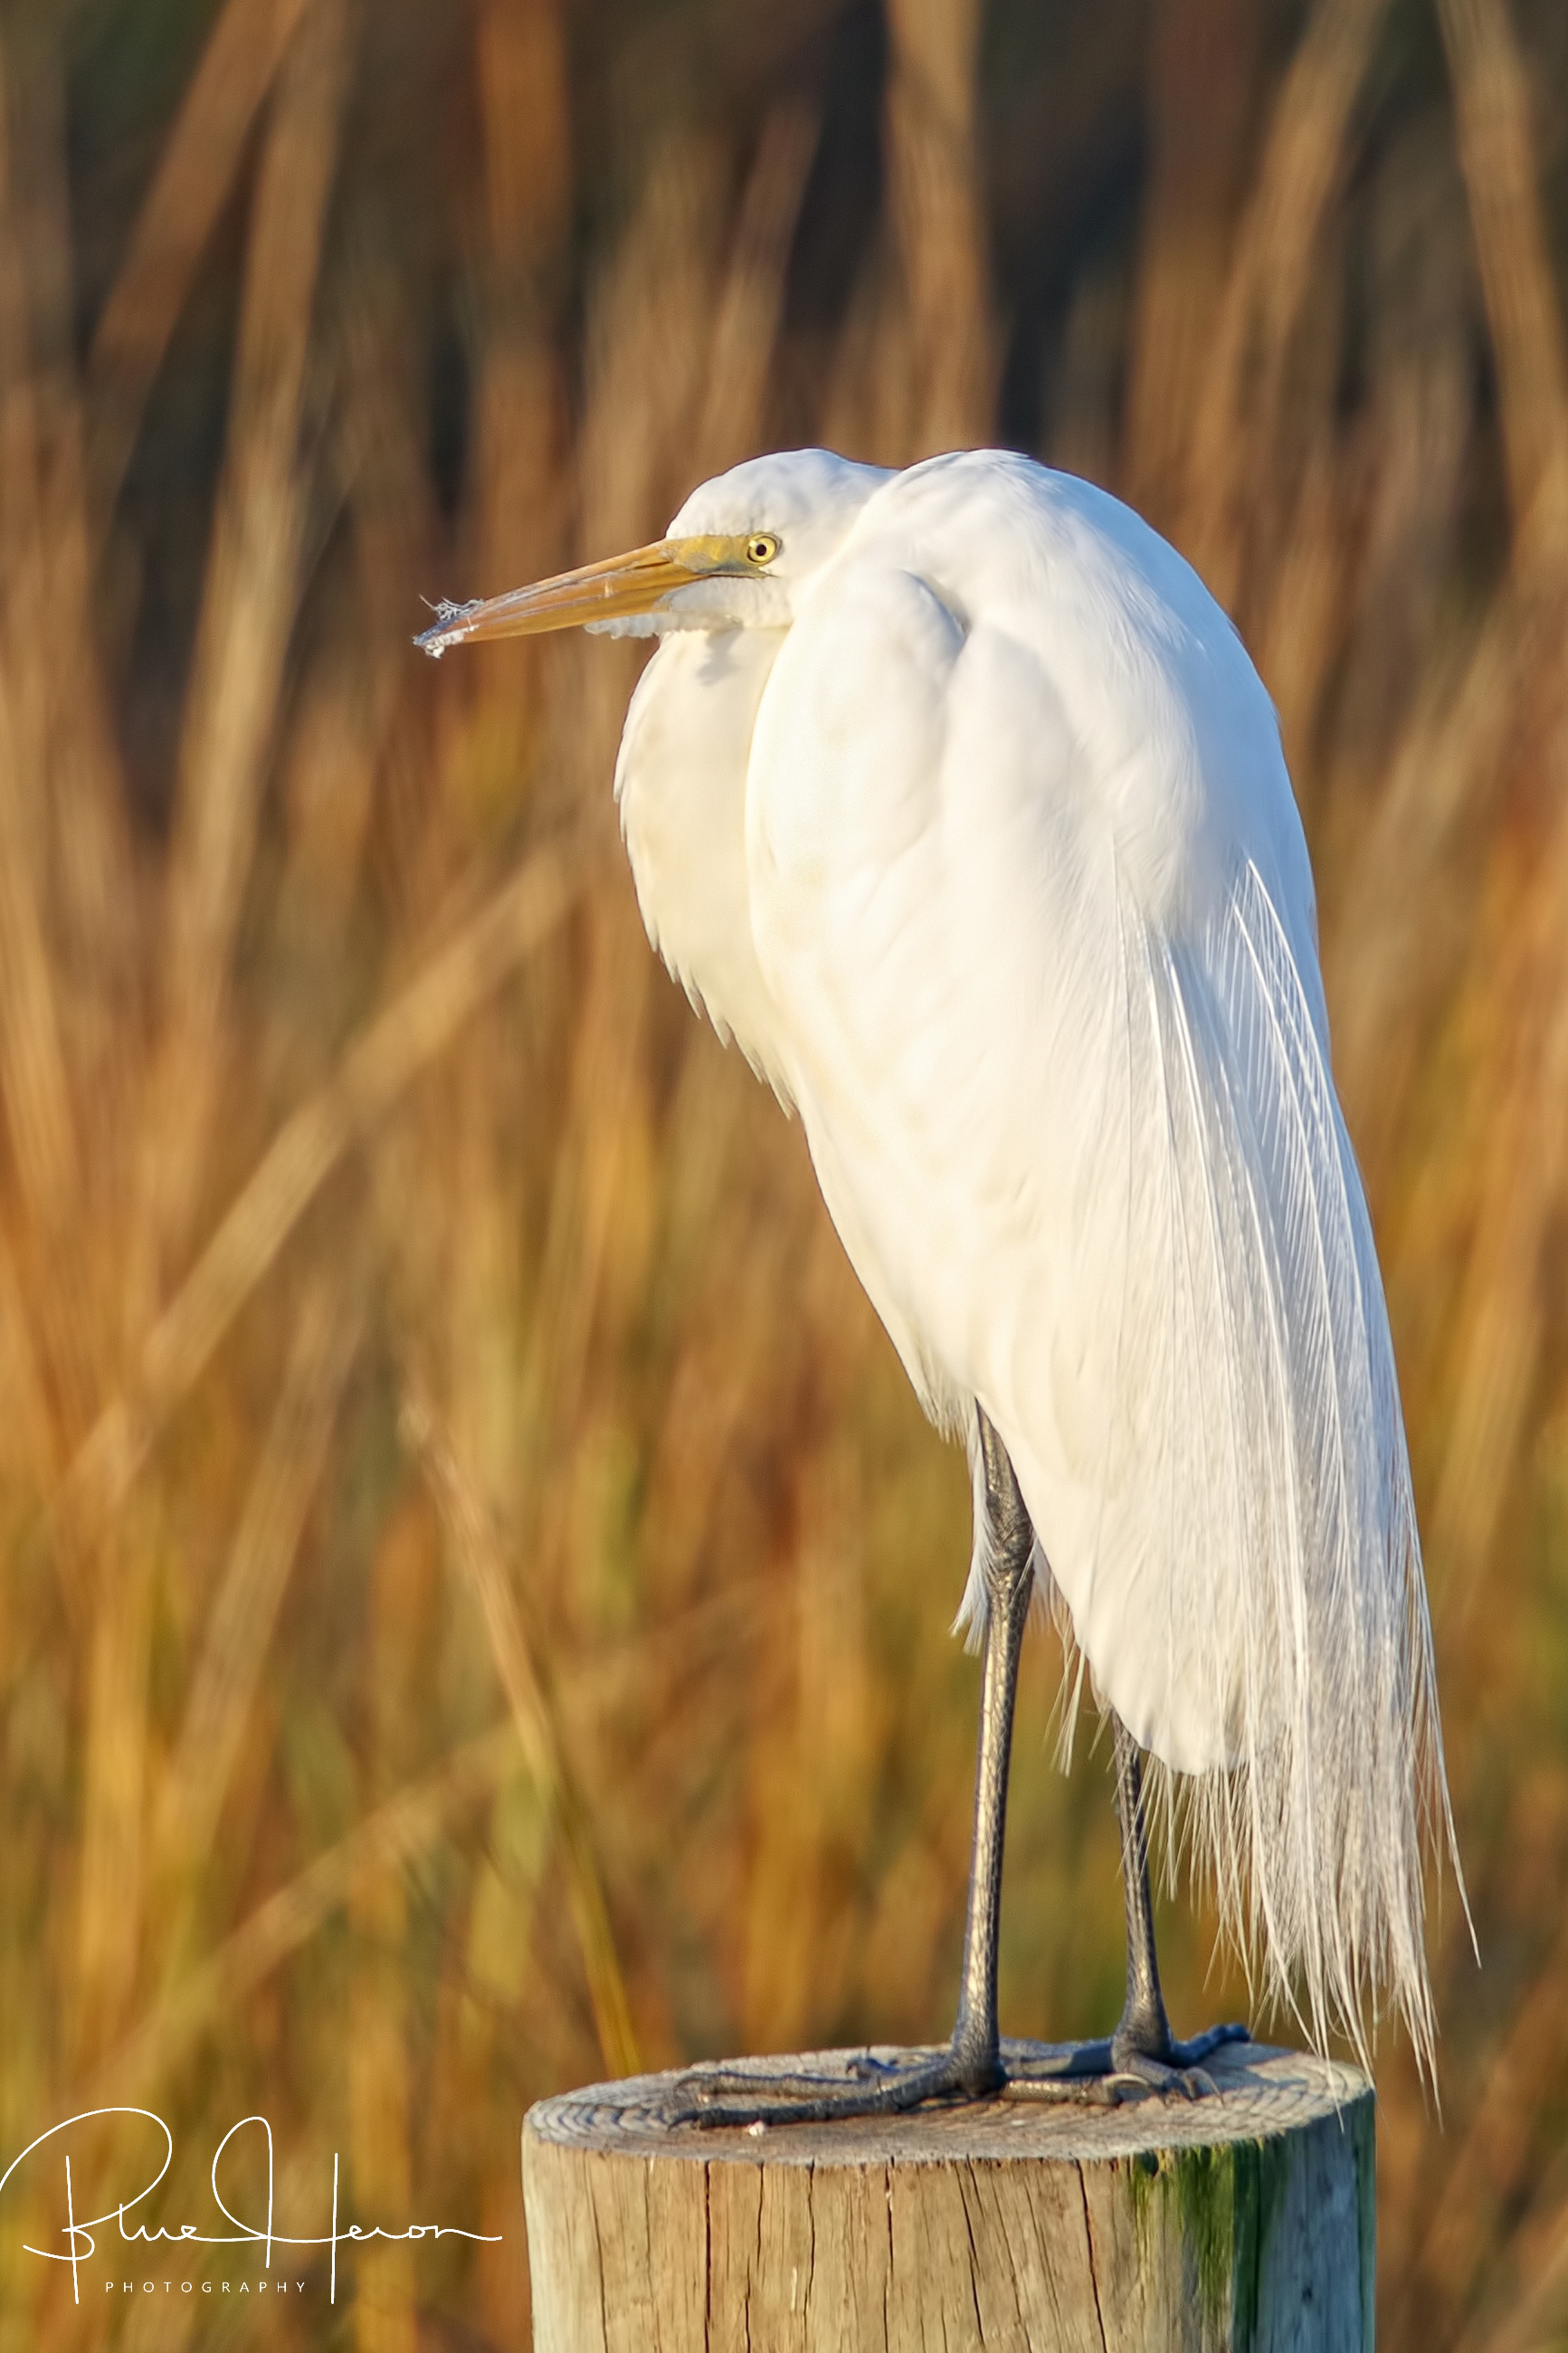 The Great White Egrets are starting to show breeding plumes. Spring is in the air.